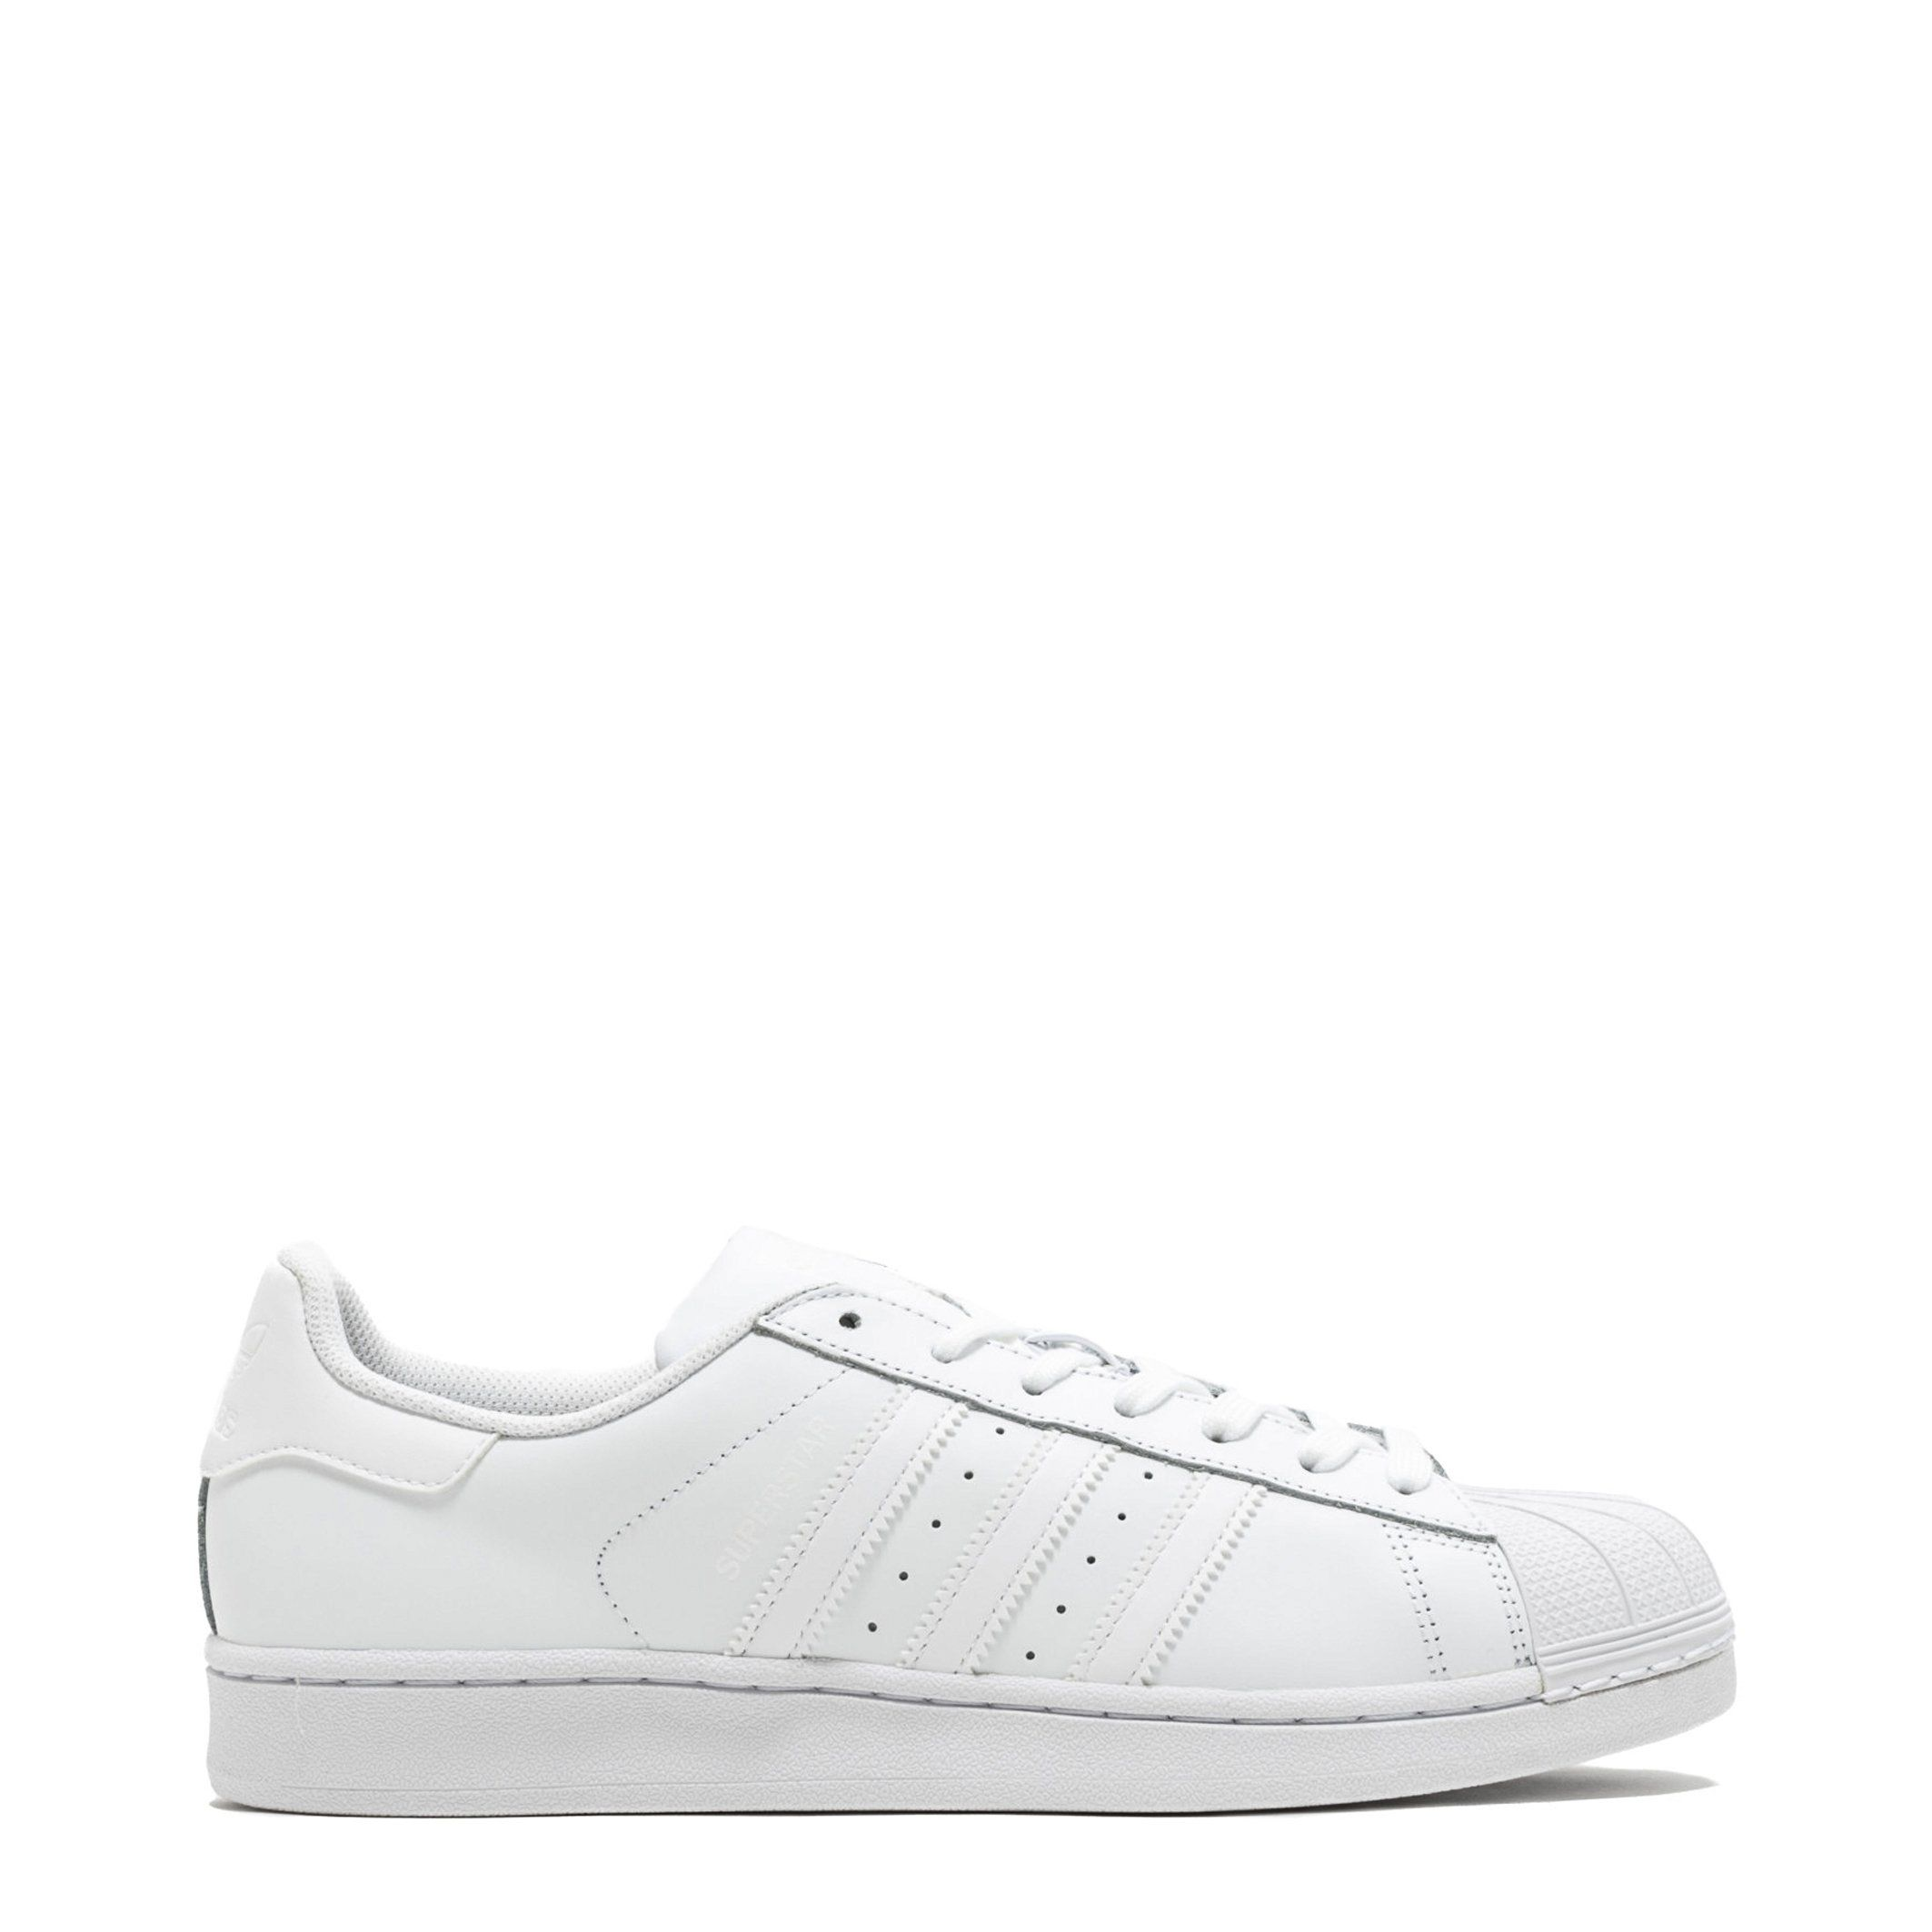 Adidas B27136 Superstar Unisex Sneakers White | Shoes in